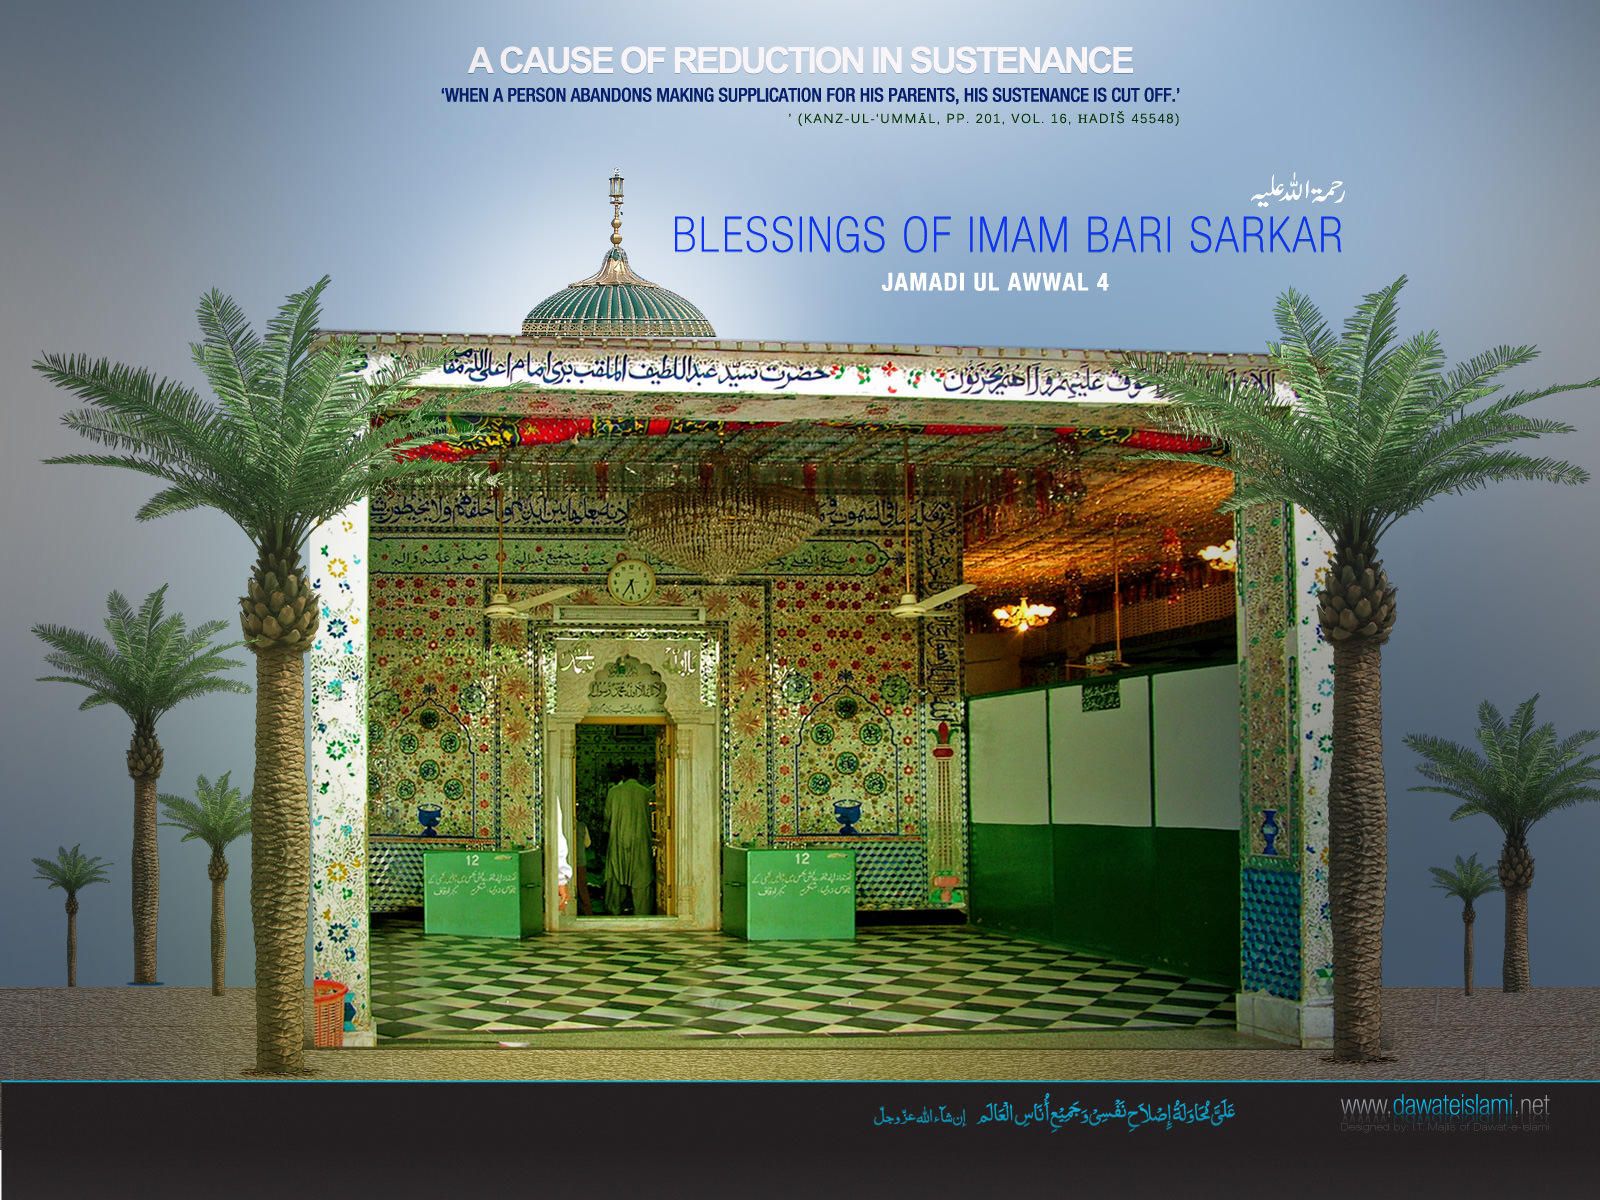 Wallpaper-Blessings Of Imam Bari Sarkar